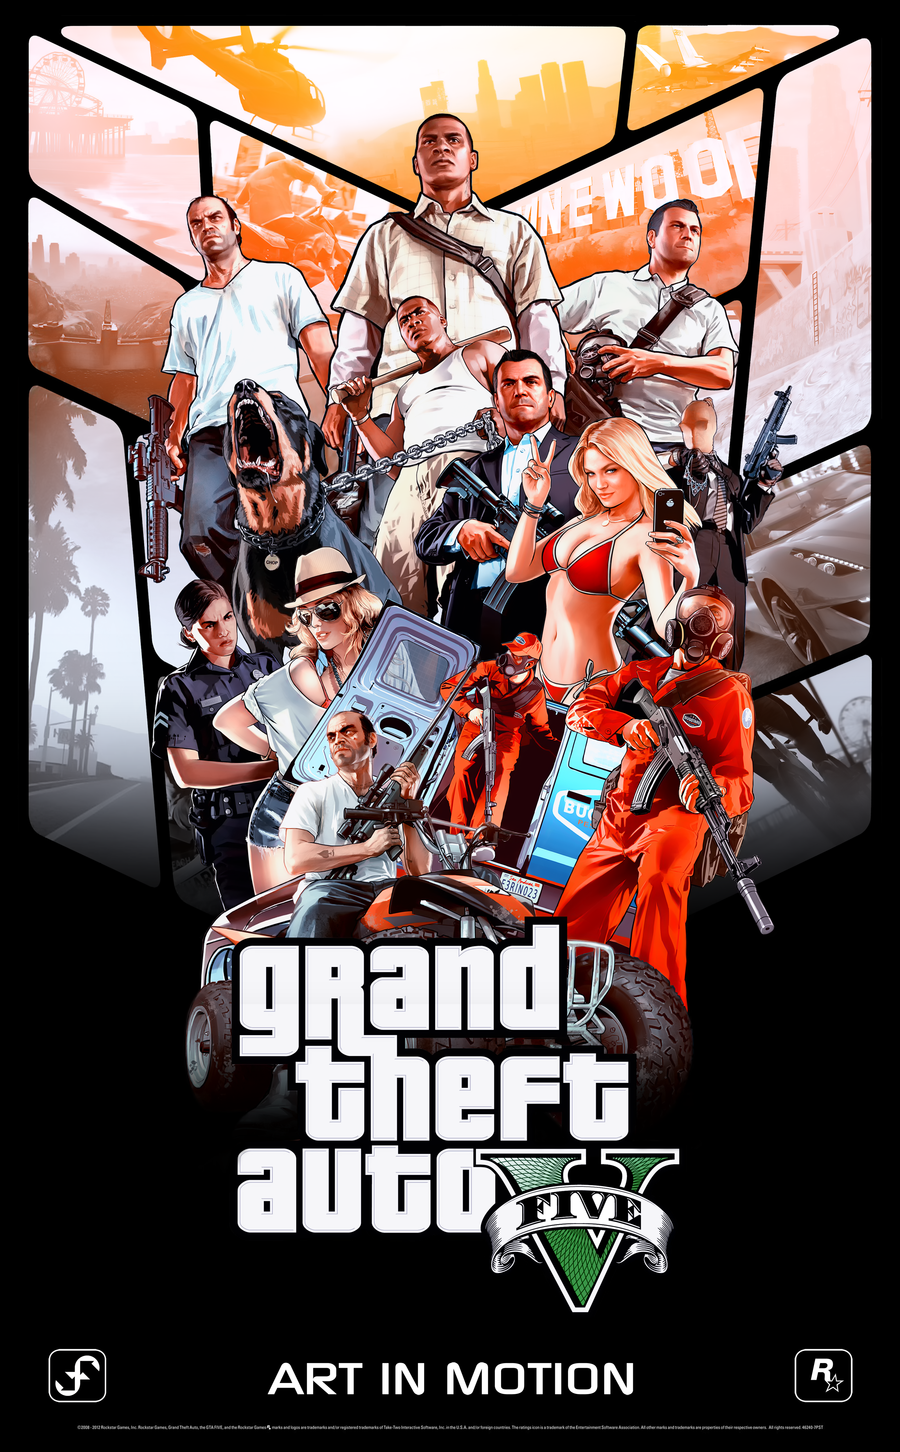 Gta V Poster 200000 Views Celebration By Ferino Design D5m7hqd Png 900 1452 Pixeles Desenho De Gta Posters De Games Personagens De Jogos